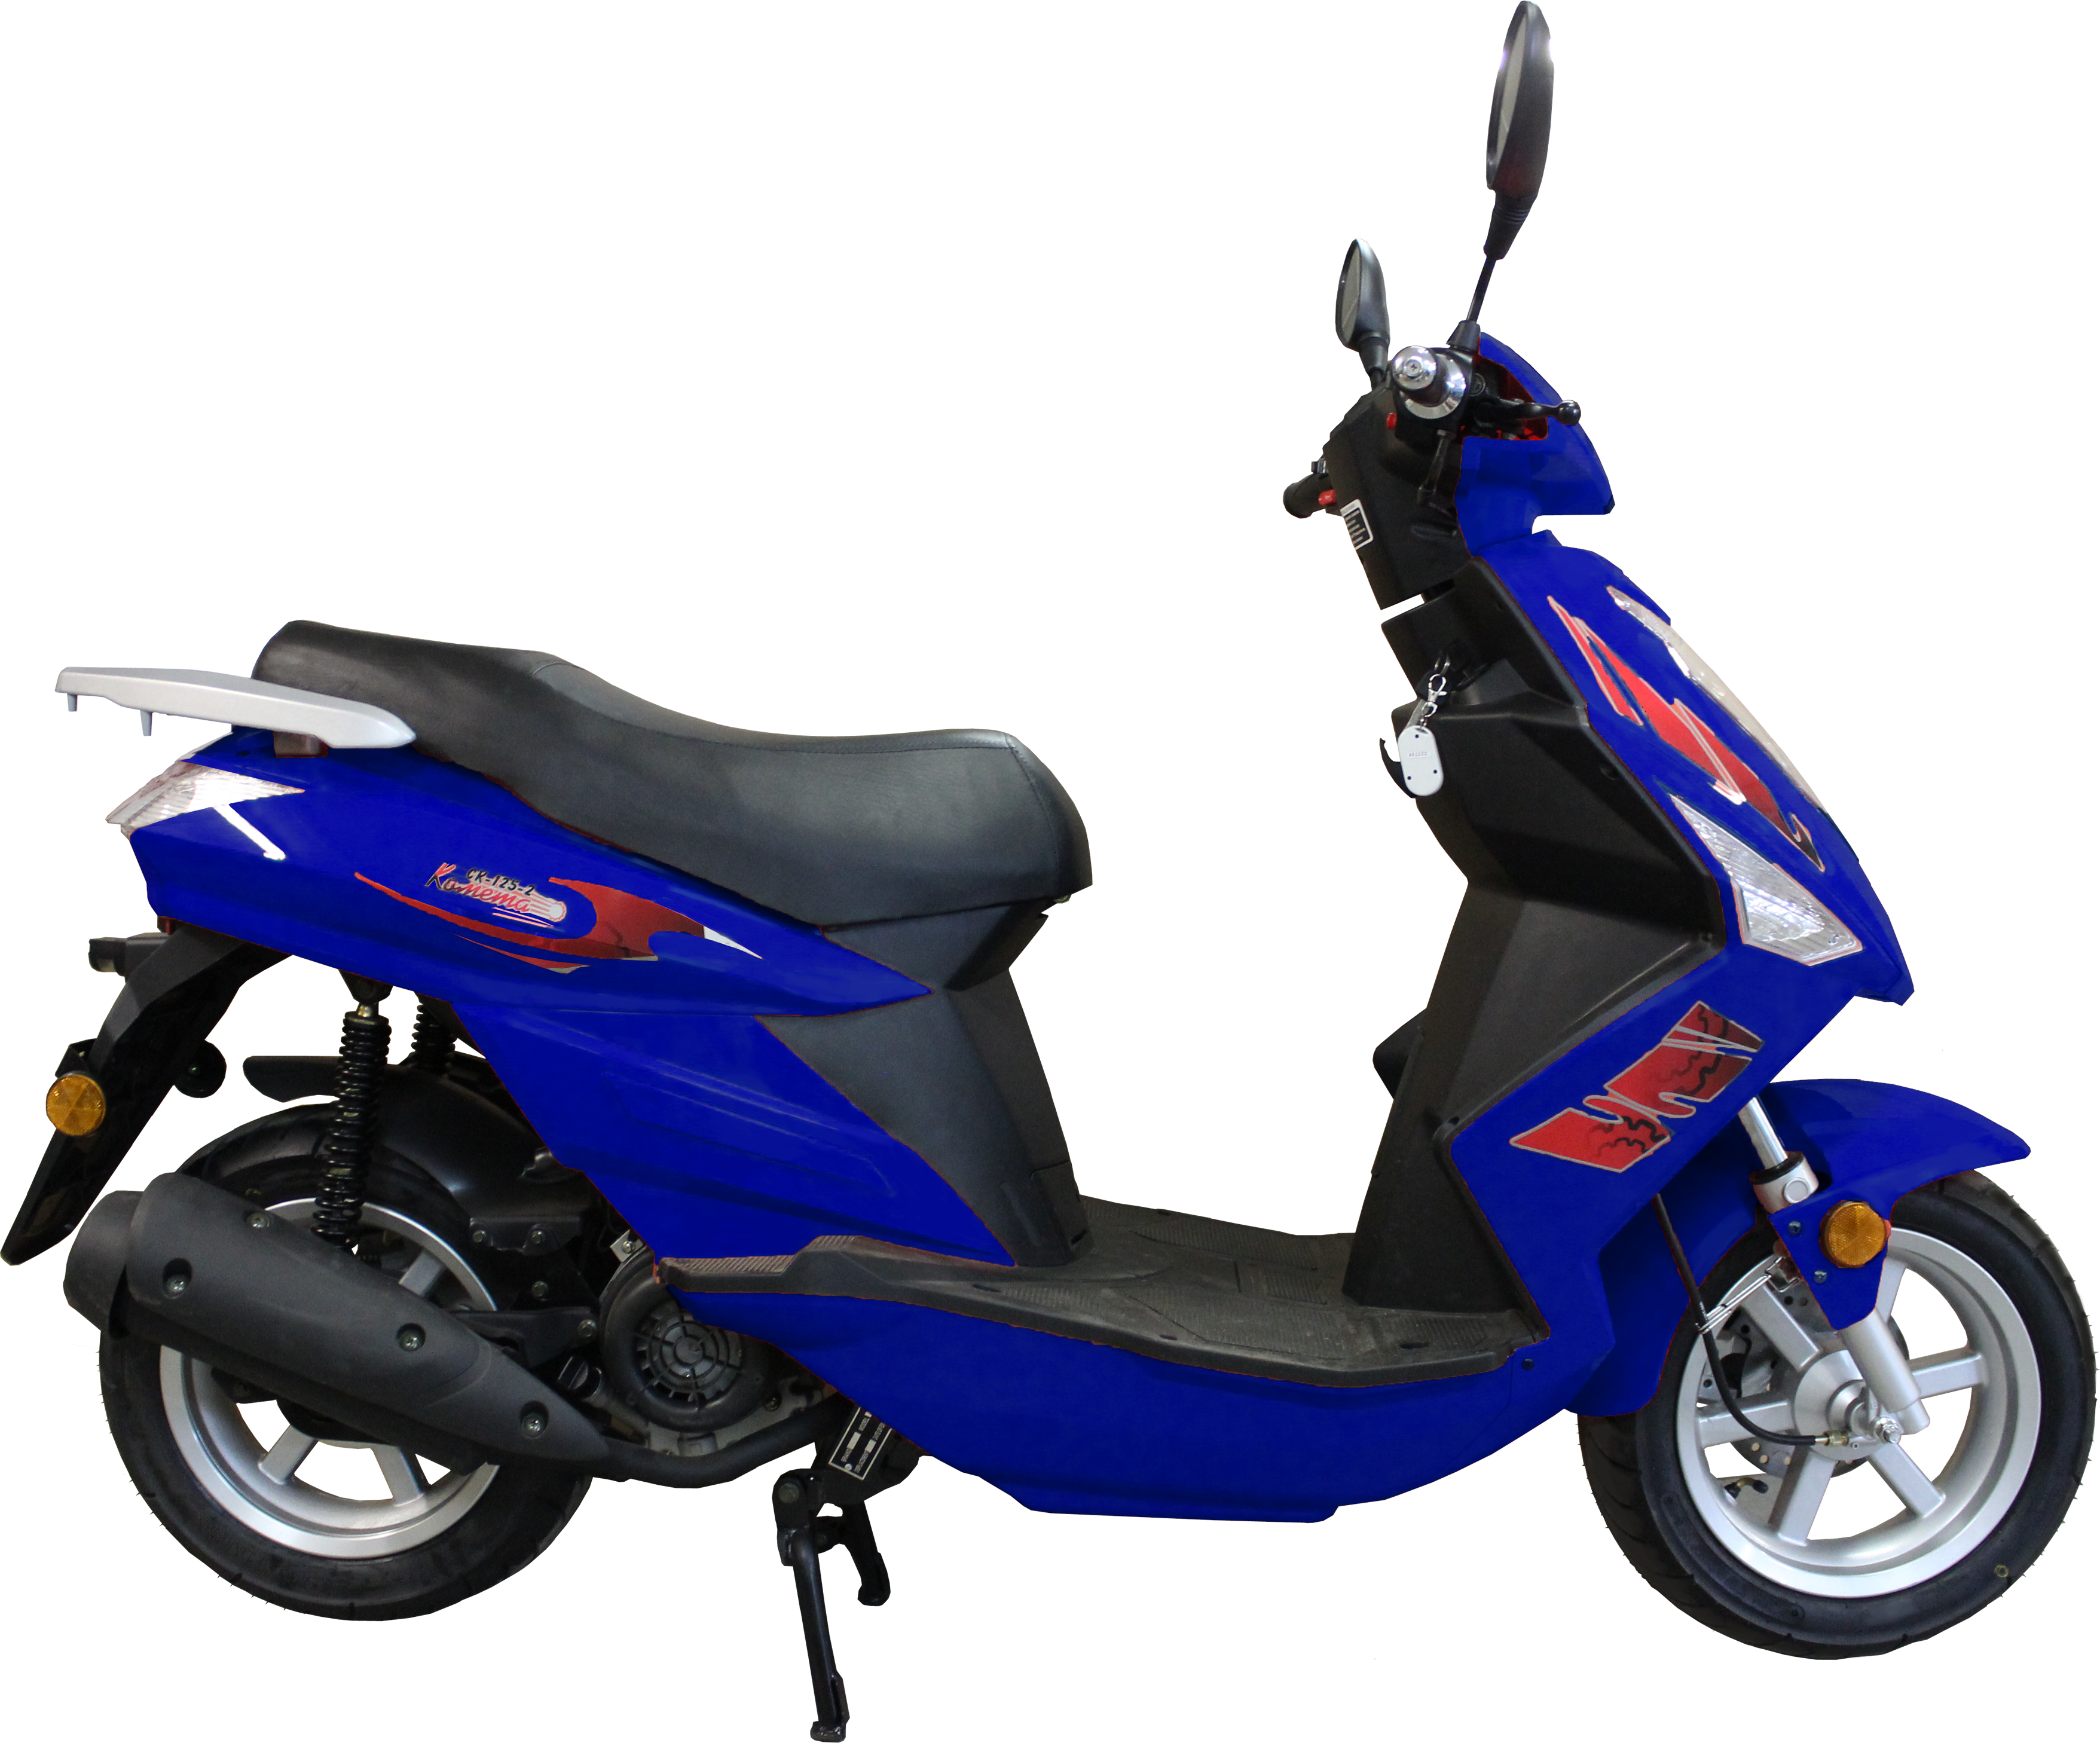 Png image . Scooter clipart transparent